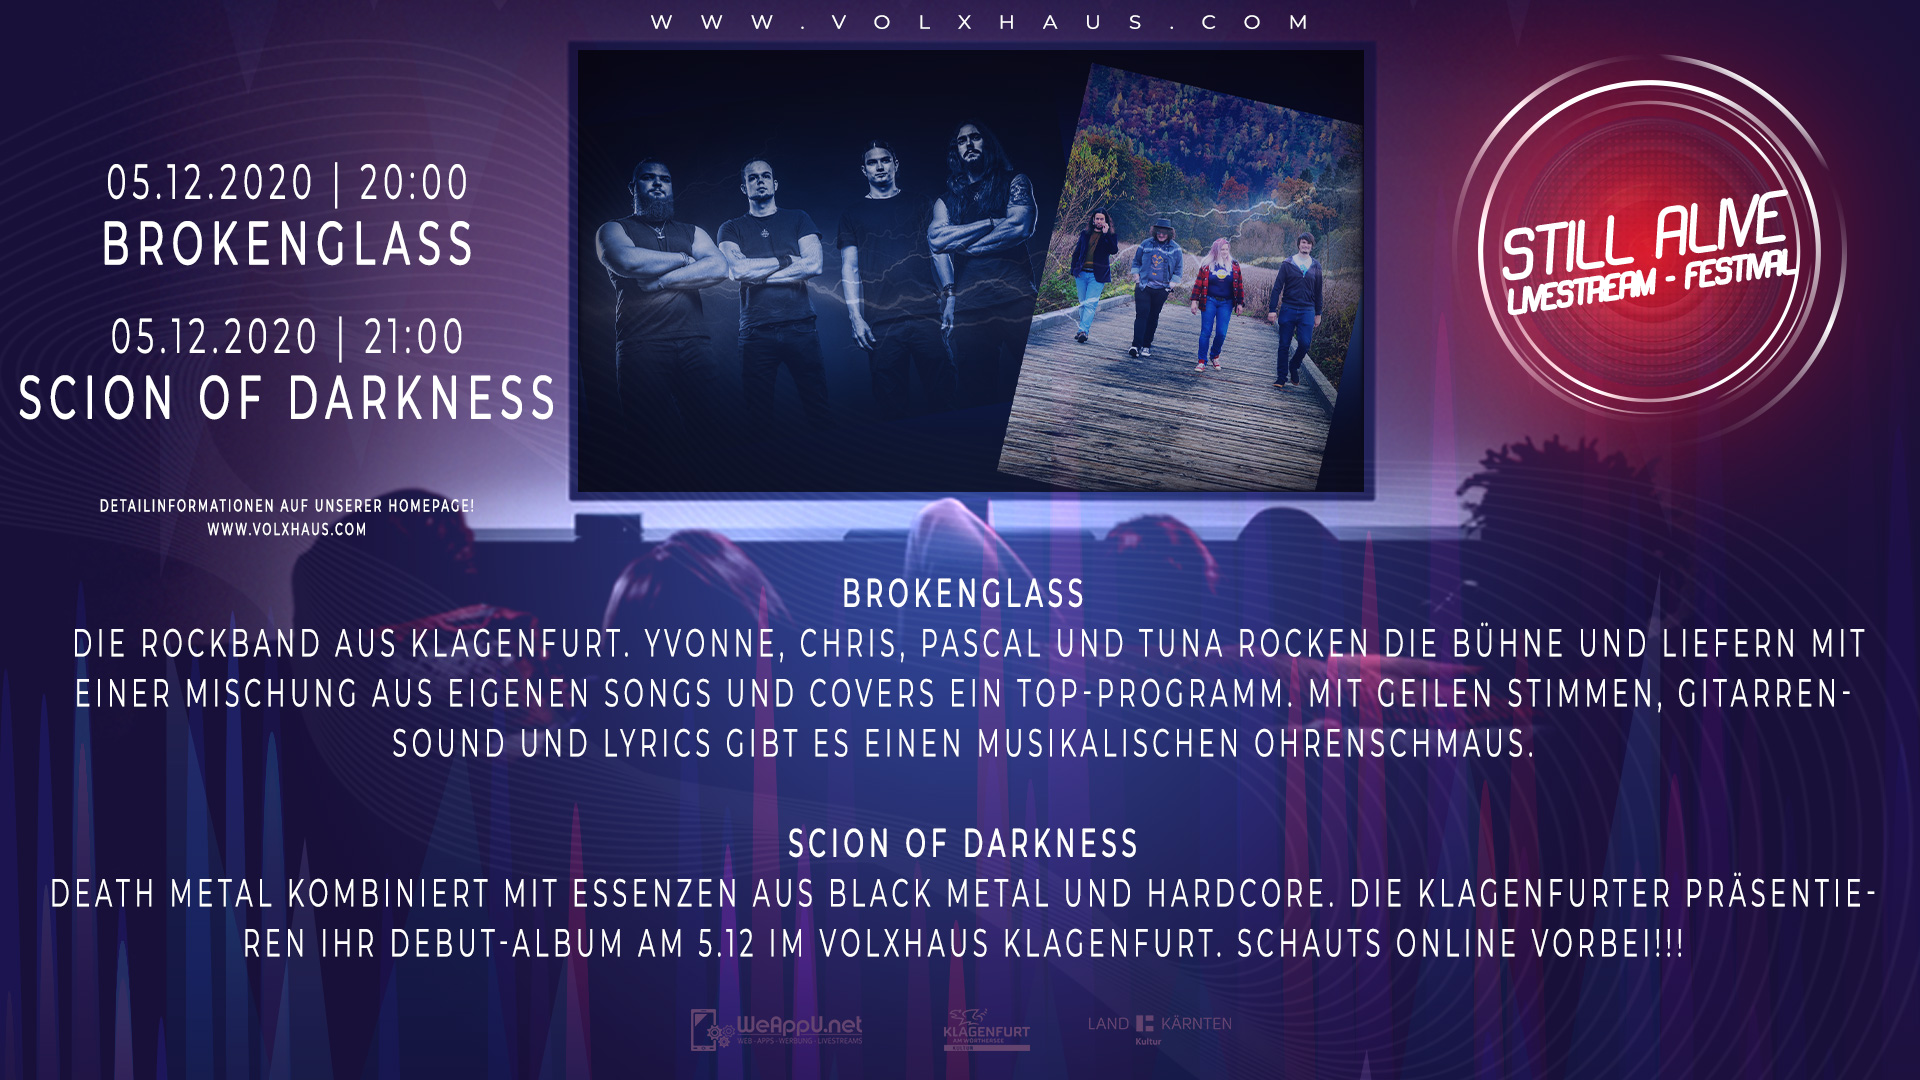 Still Alive Livestream Festival mit Broken Glass & Scion of Darkness